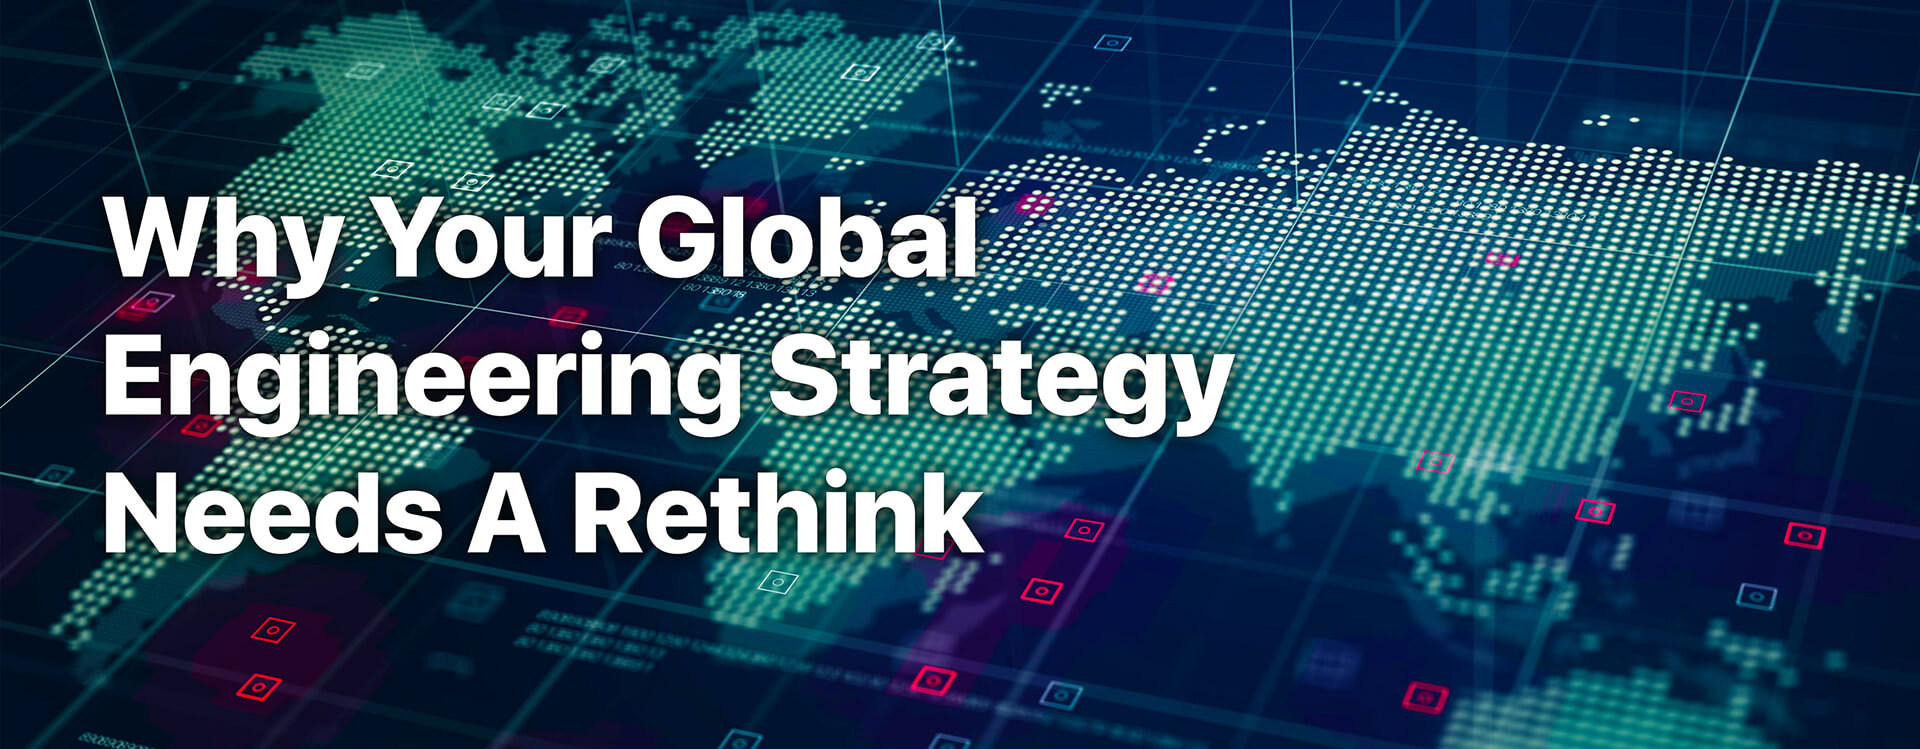 Why Your Global Engineering Strategy Needs A Rethink